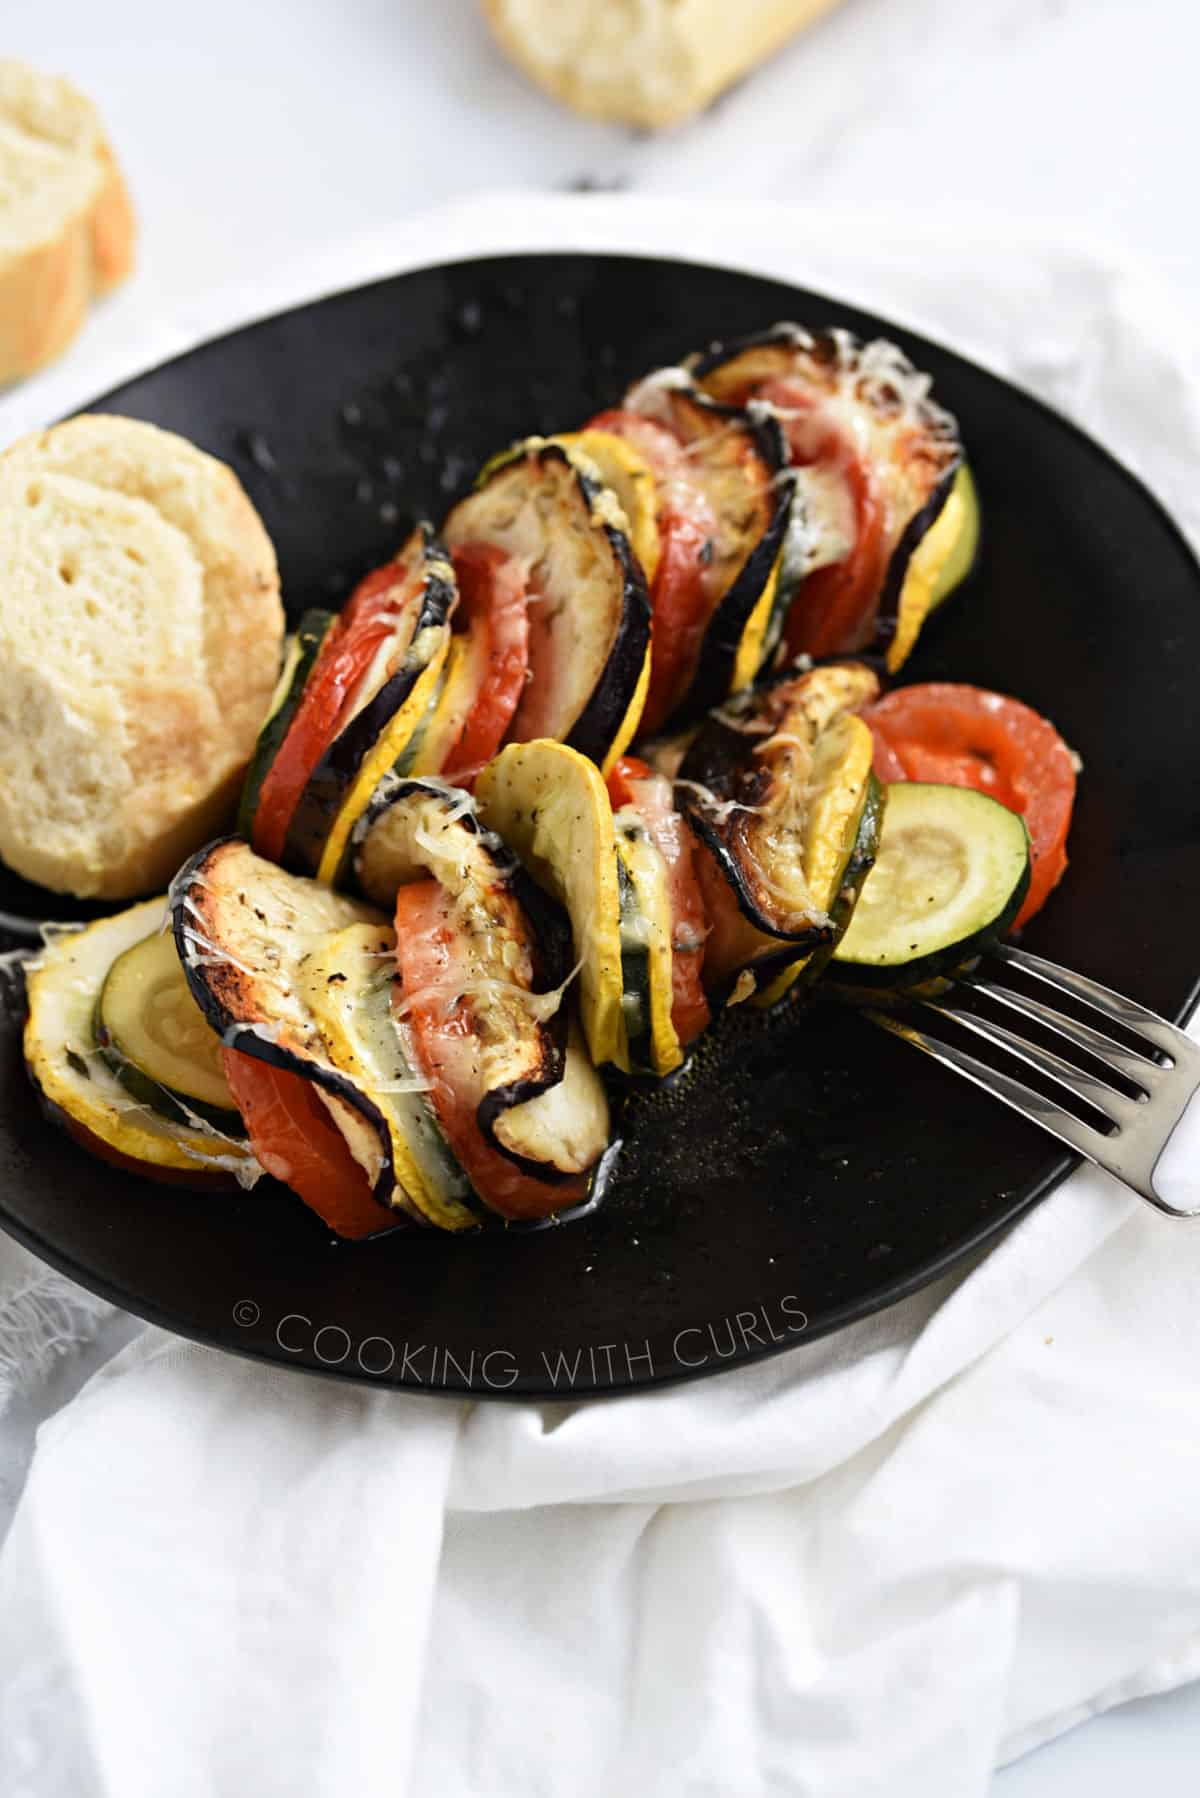 Vegetable Tian on a black plate with a slice of bread.